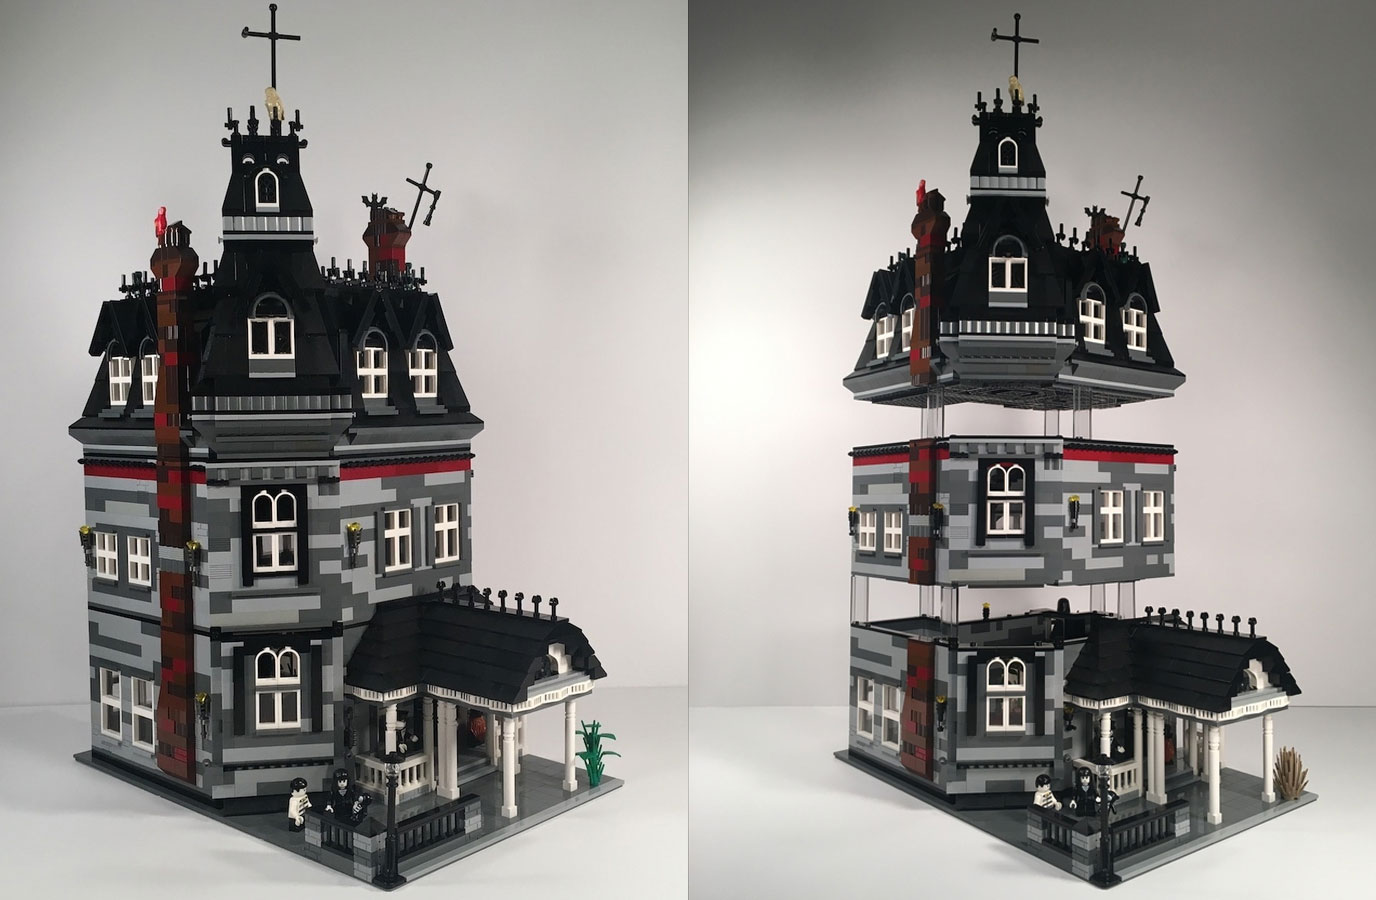 Lego Creator Returns With New Addams Family Lego Ideas Submission